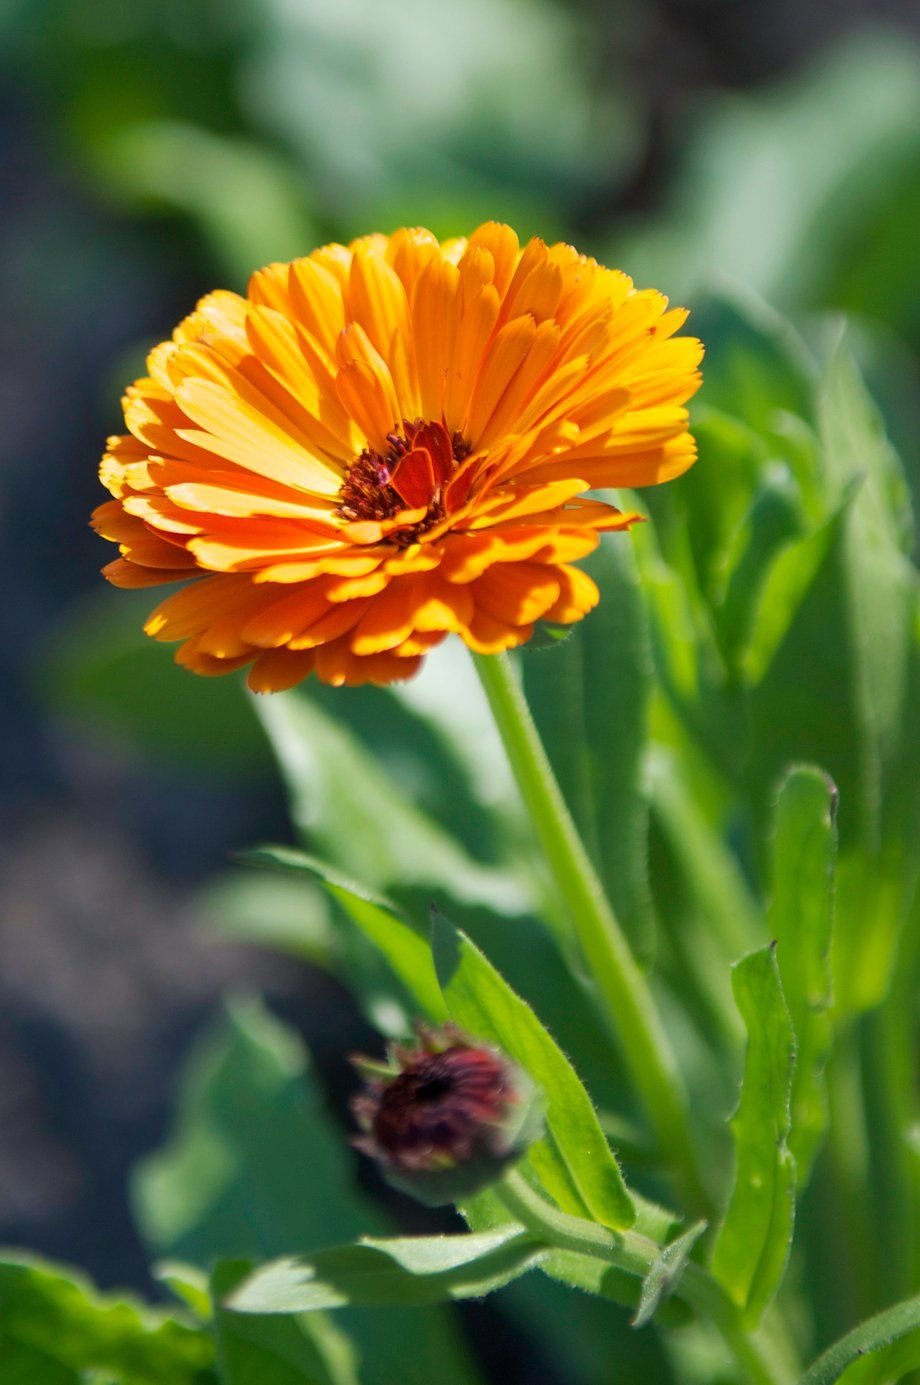 Calendula officinalis Otherwise known as Pot Marigold is